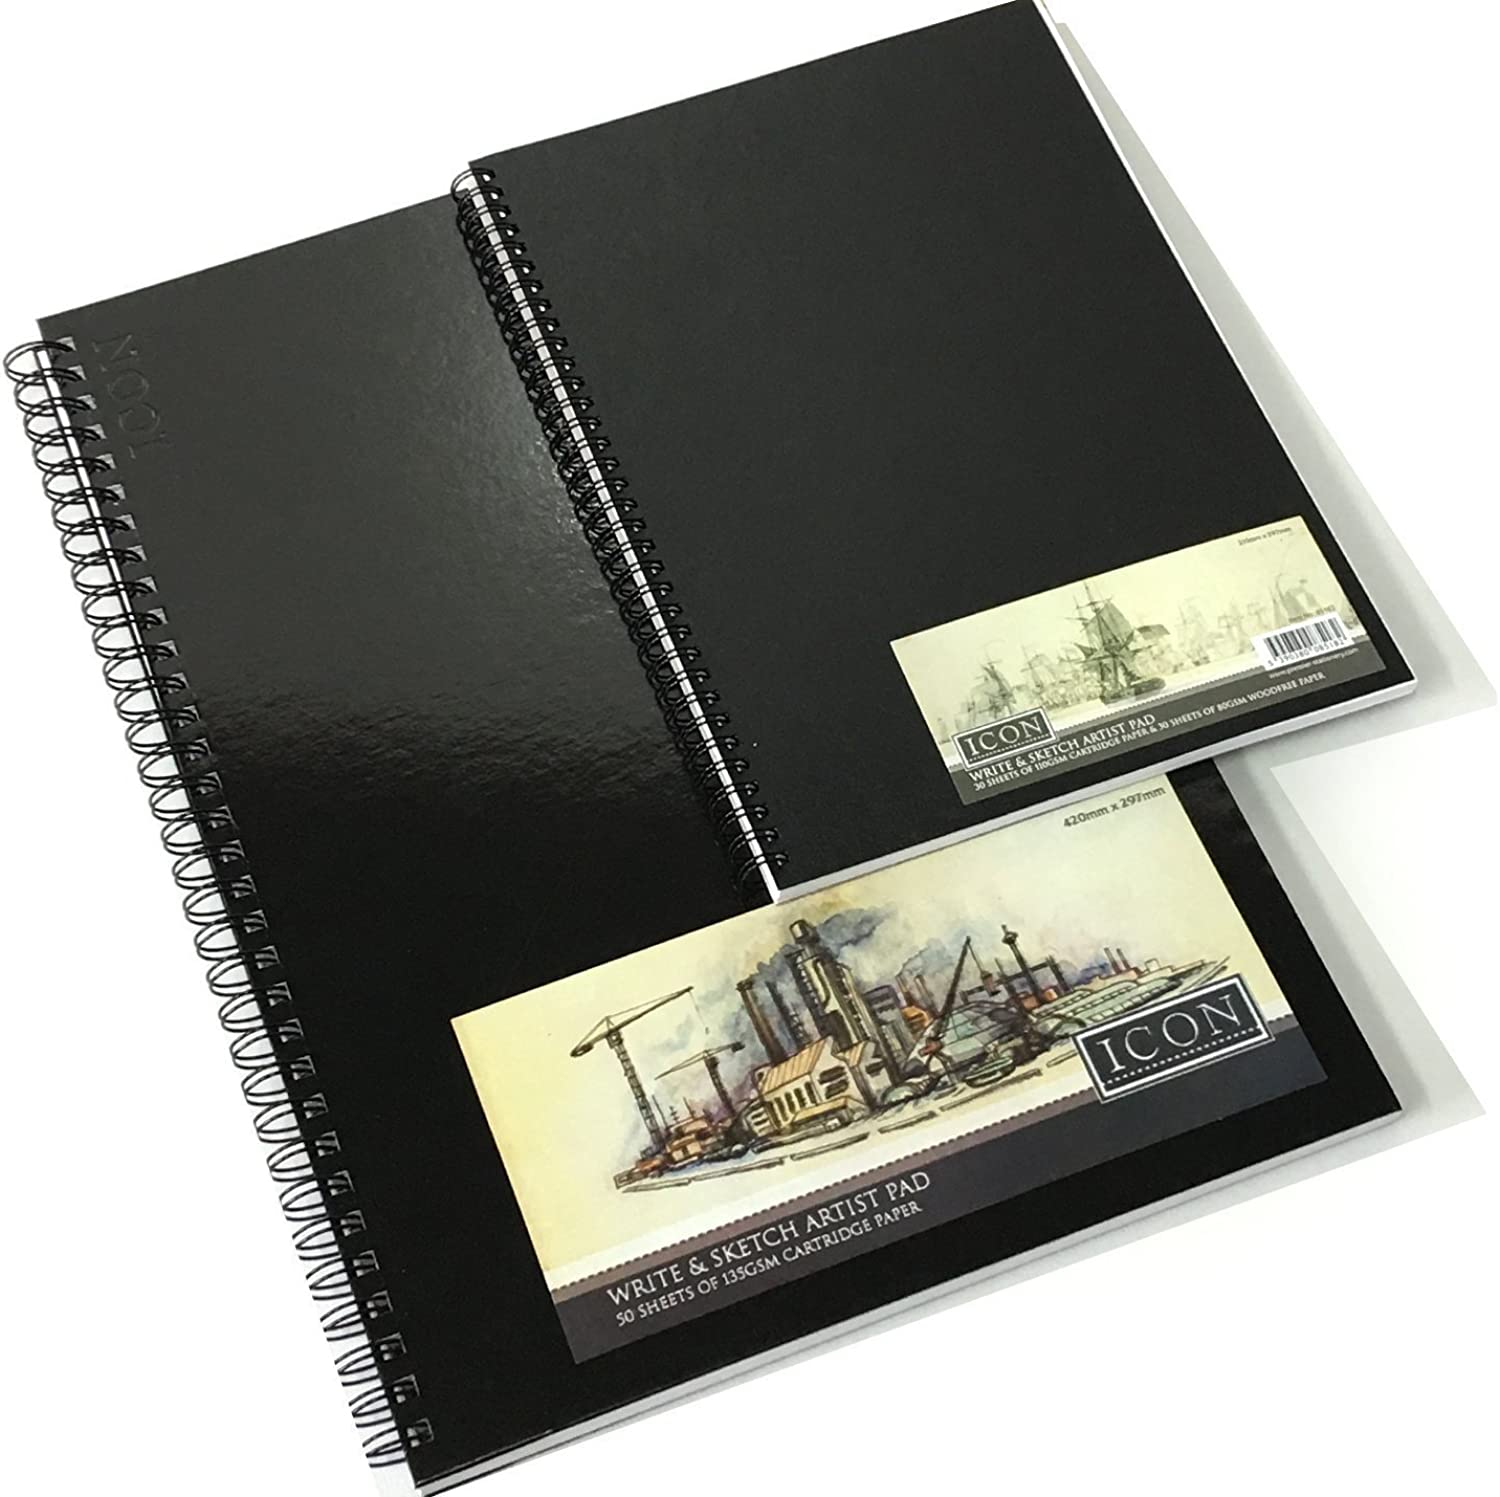 A3 A4 A5 Sketch Book Pad Weiß Cartridge Paper schwarz Hardback Spiral Bound New (A3) B01N12S4S0  | Charmantes Design